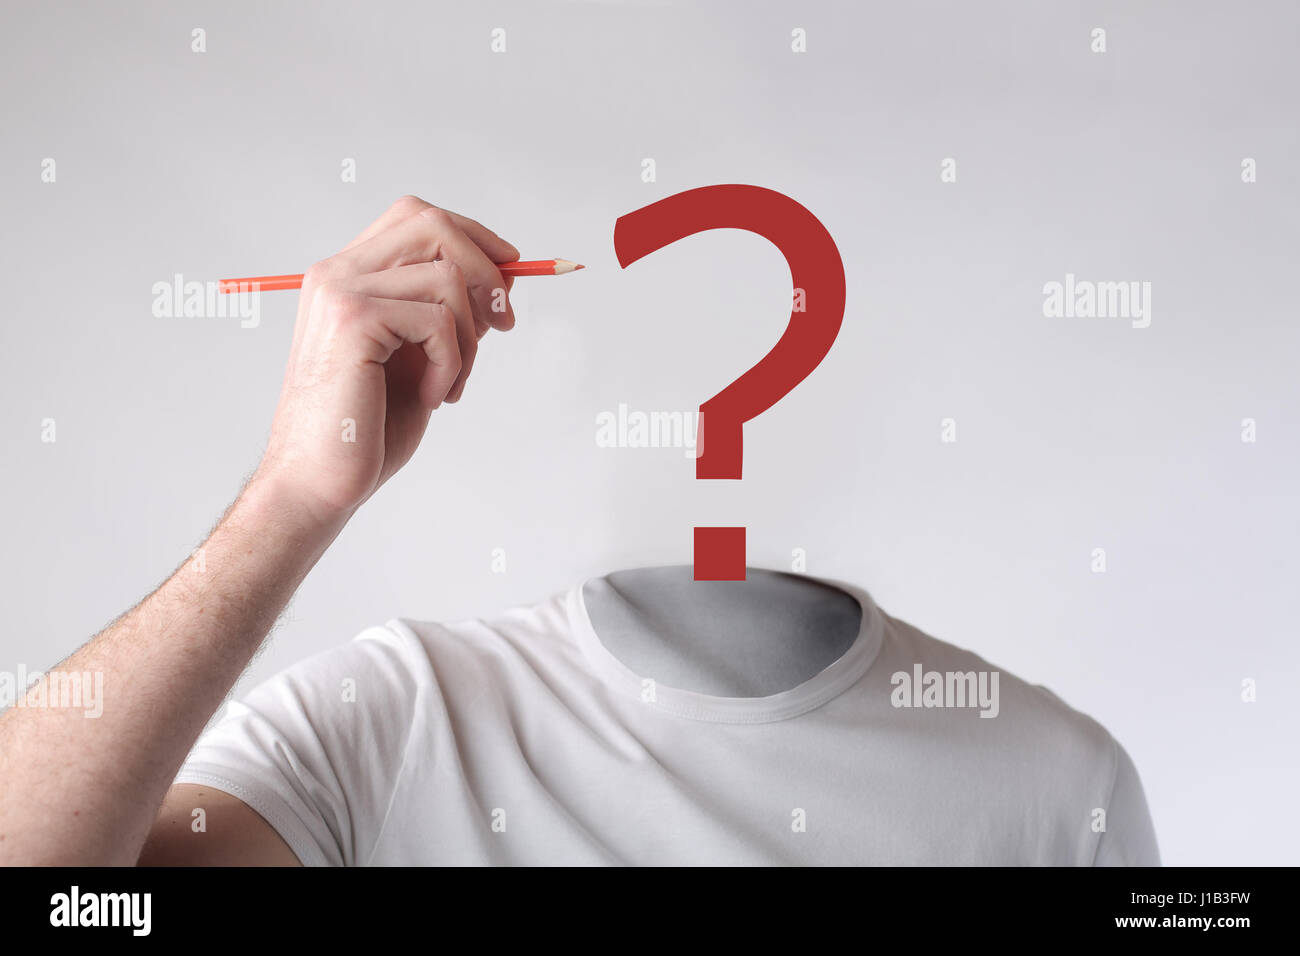 Headless man with a question mark on his head - Stock Image